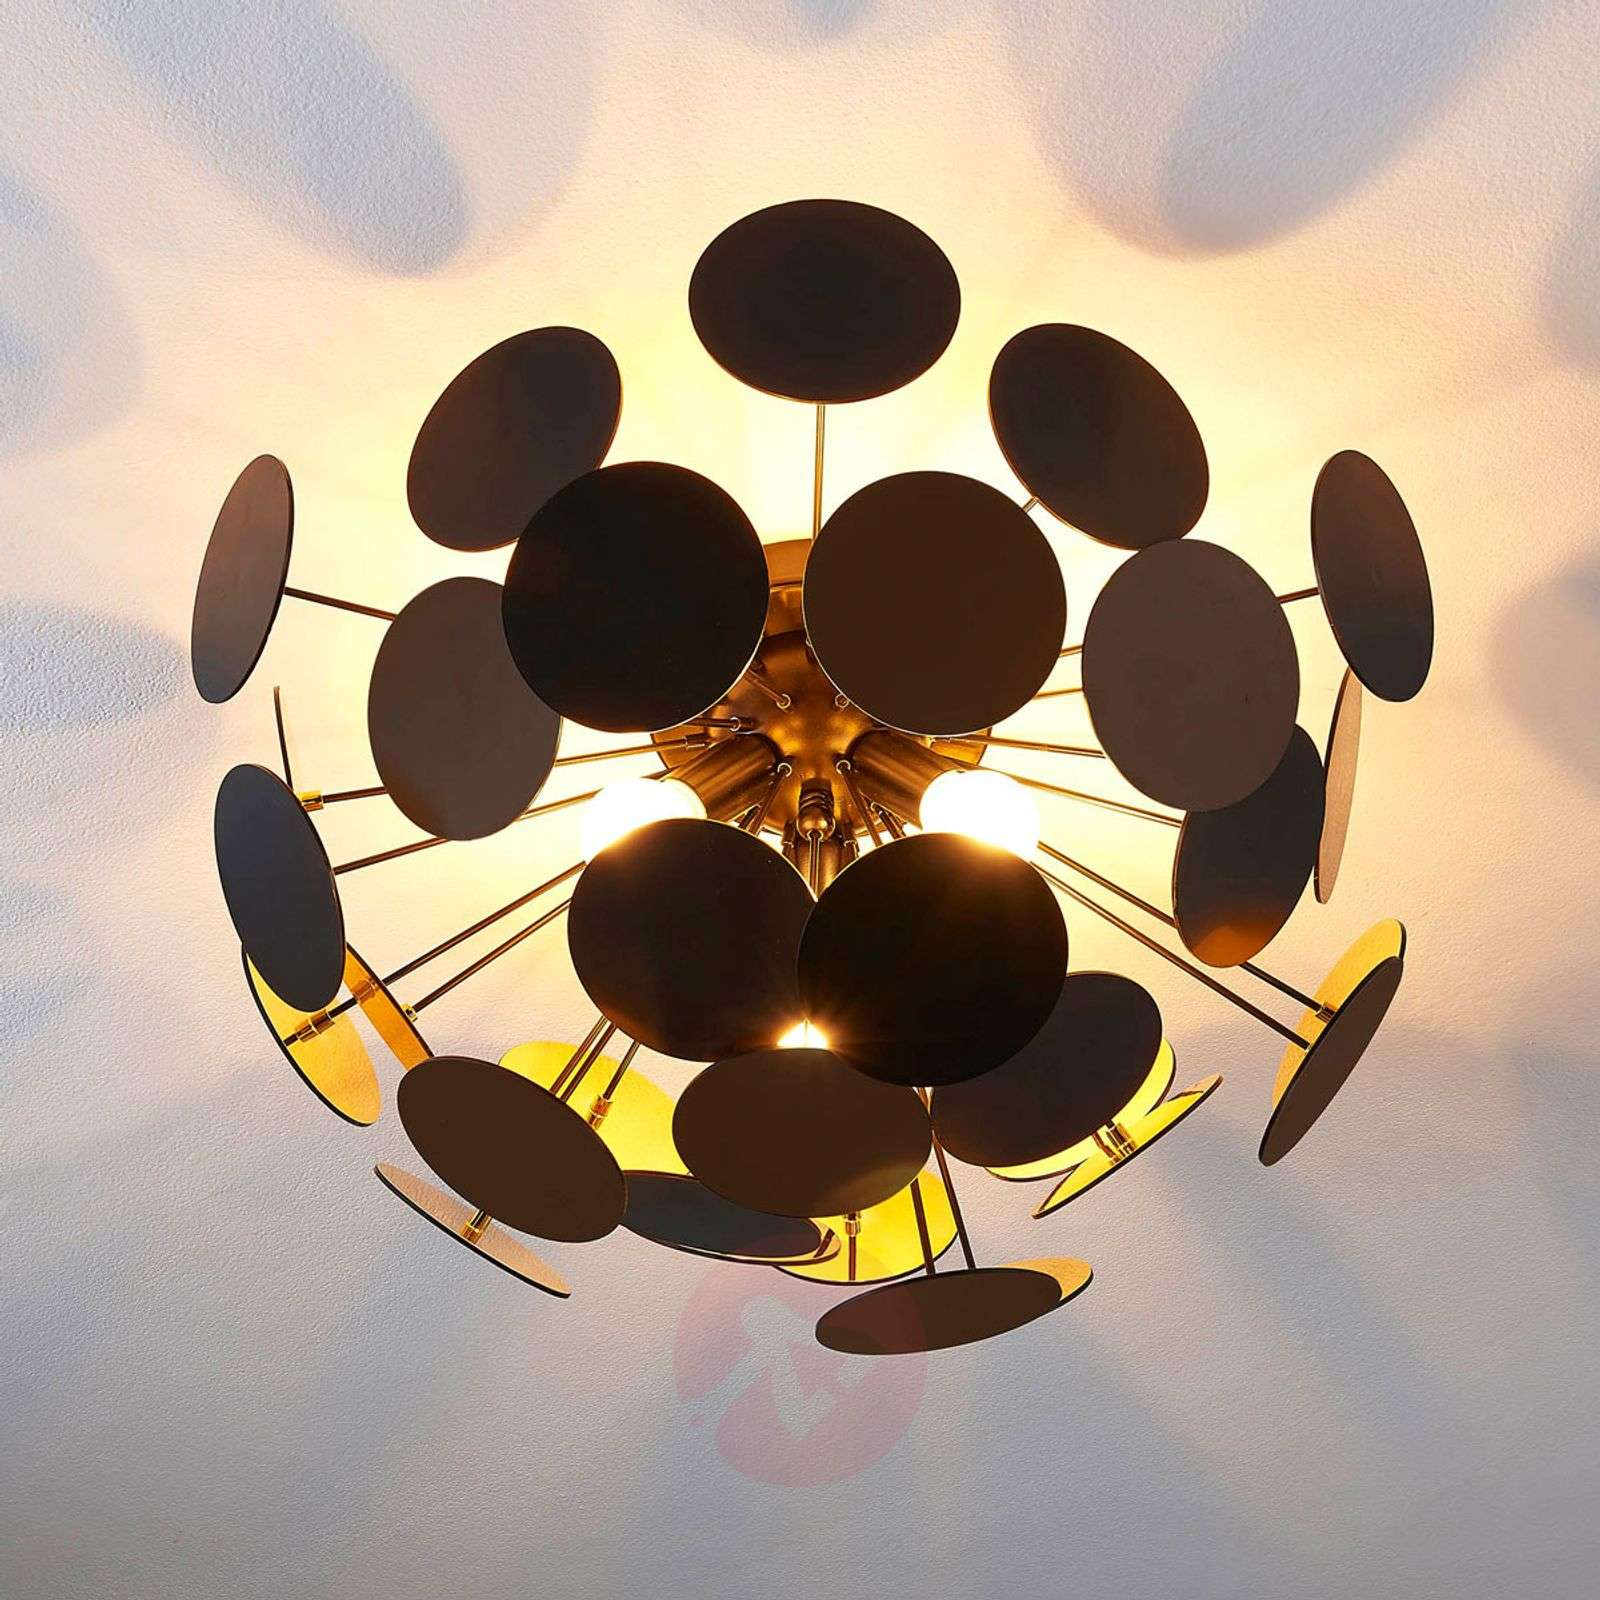 Black and gold ceiling lamp Kinan-9621167-02